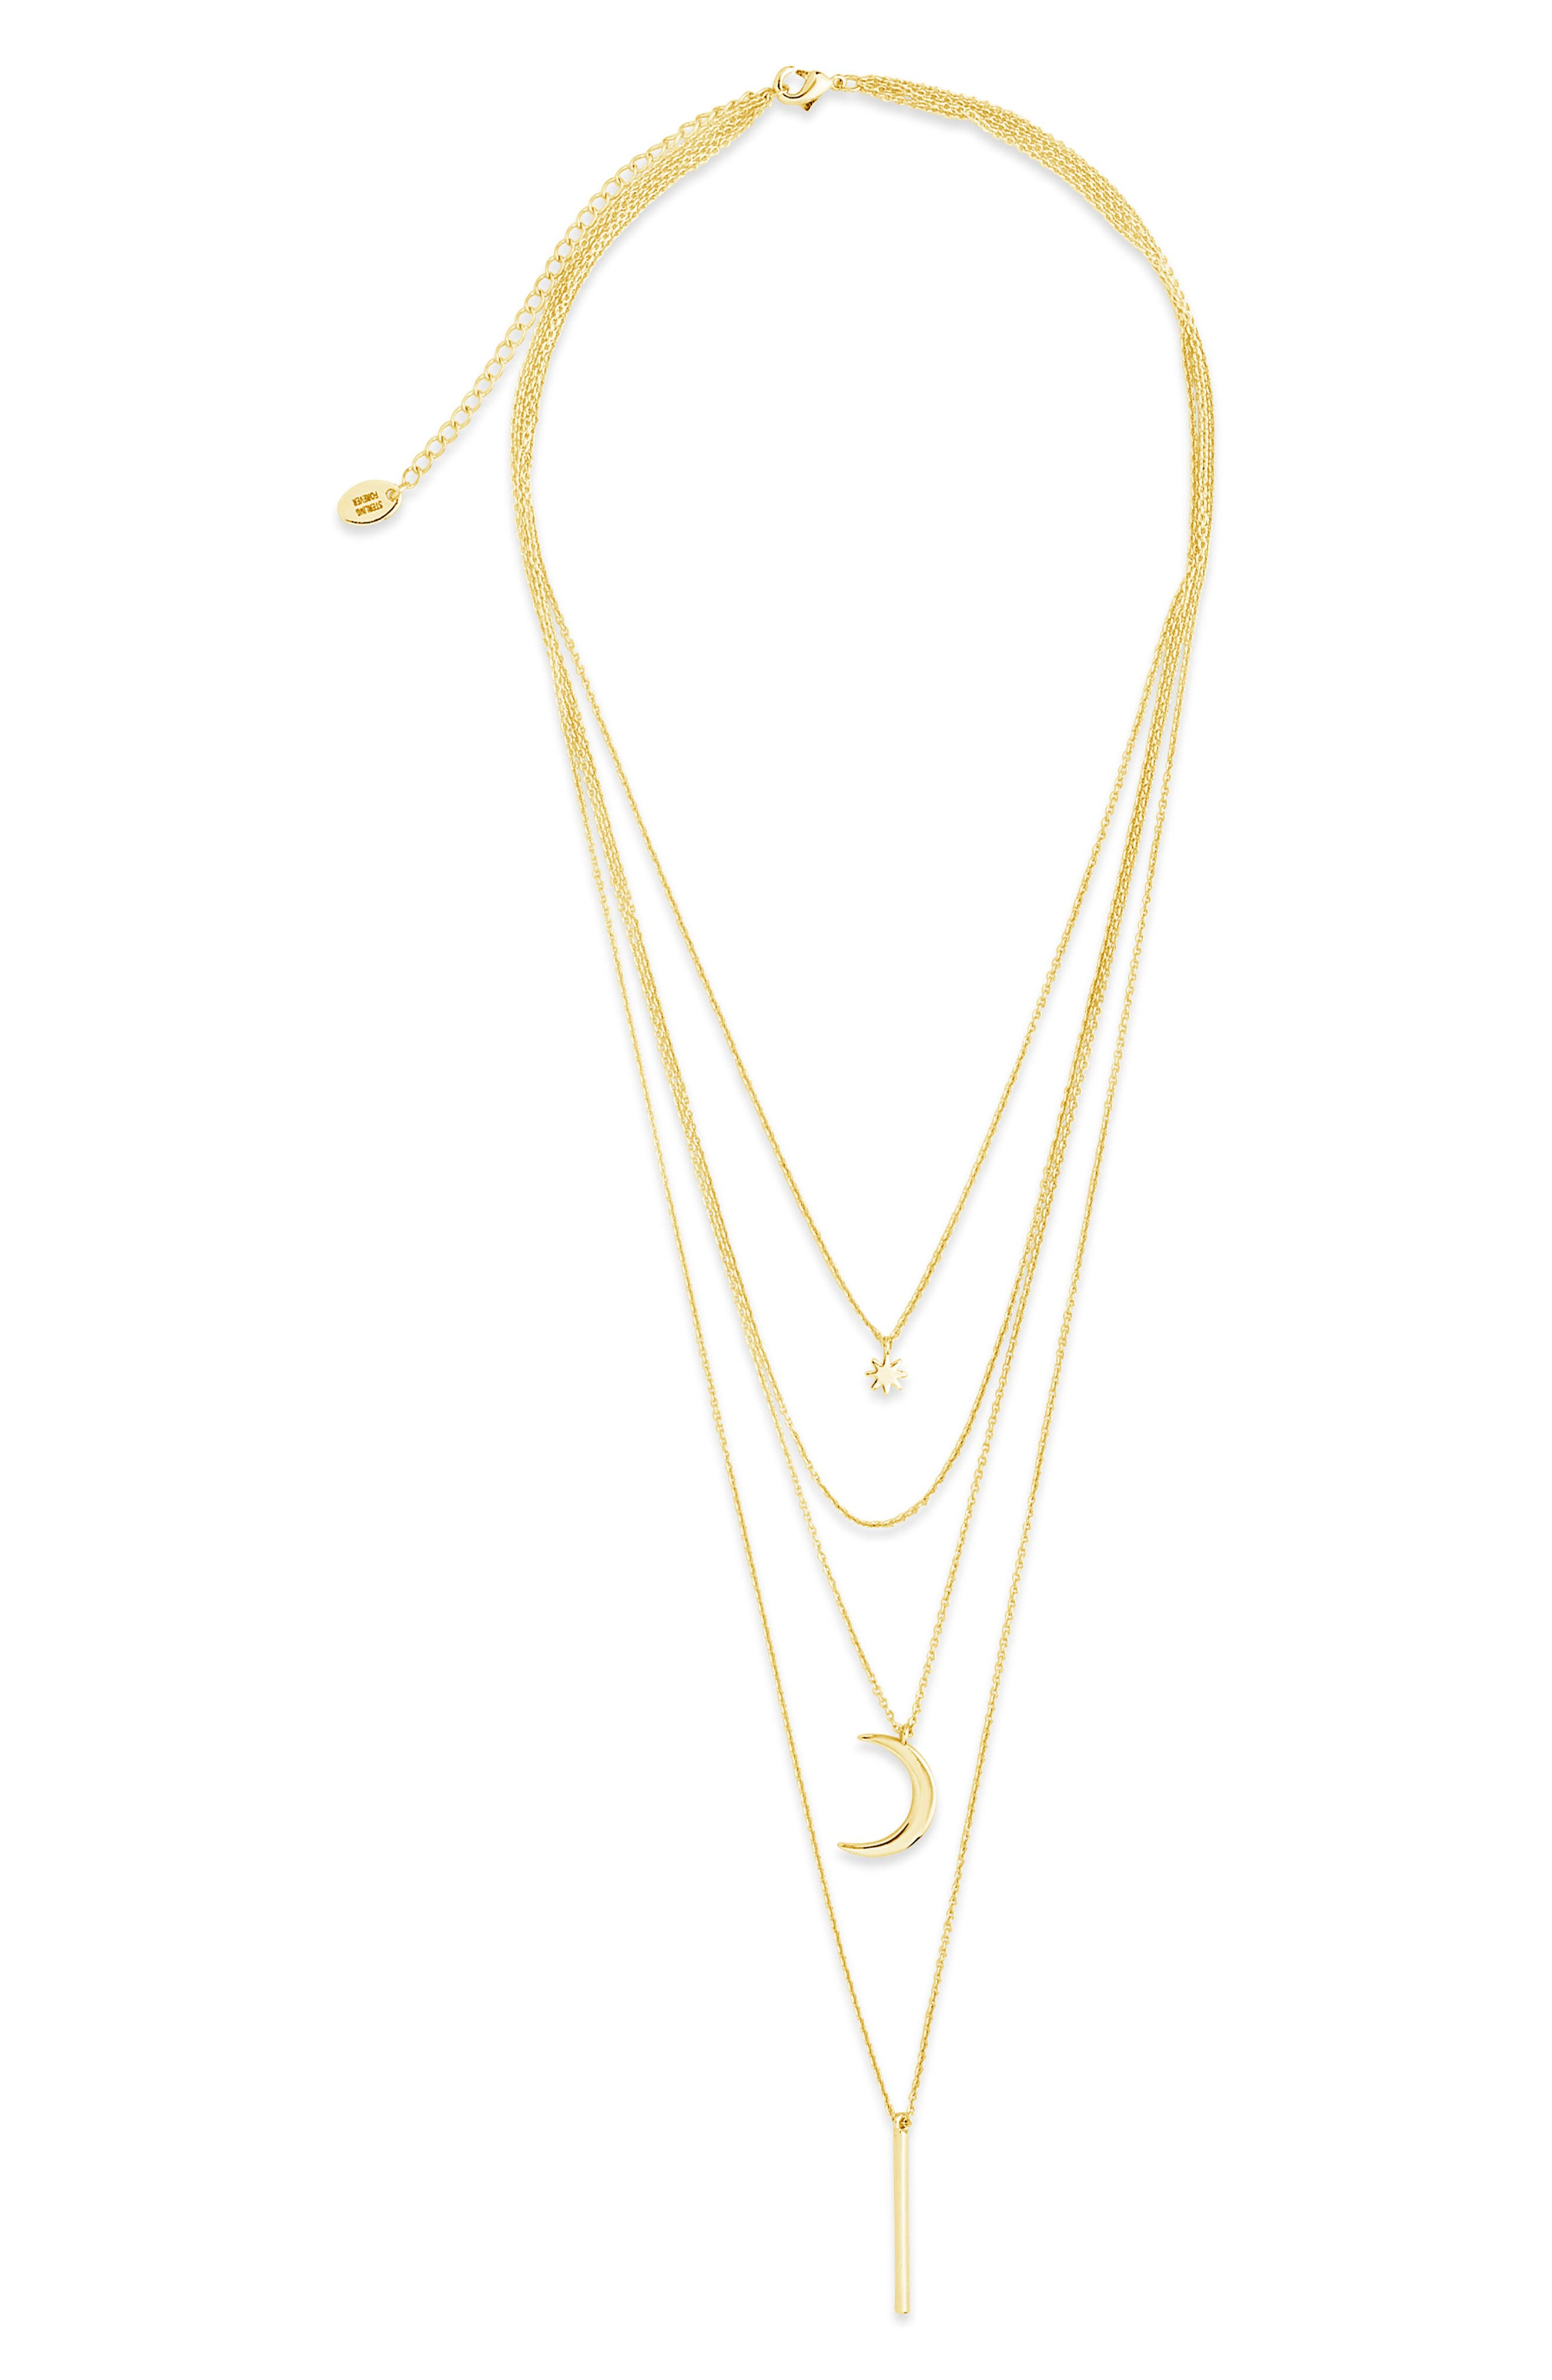 Dainty pendants anchor the delicate chains of a trend-smart multilayered necklace plated in gleaming 14-karat gold. Style Name: Sterling Forever Layered Pendant Necklace. Style Number: 5804355. Available in stores.